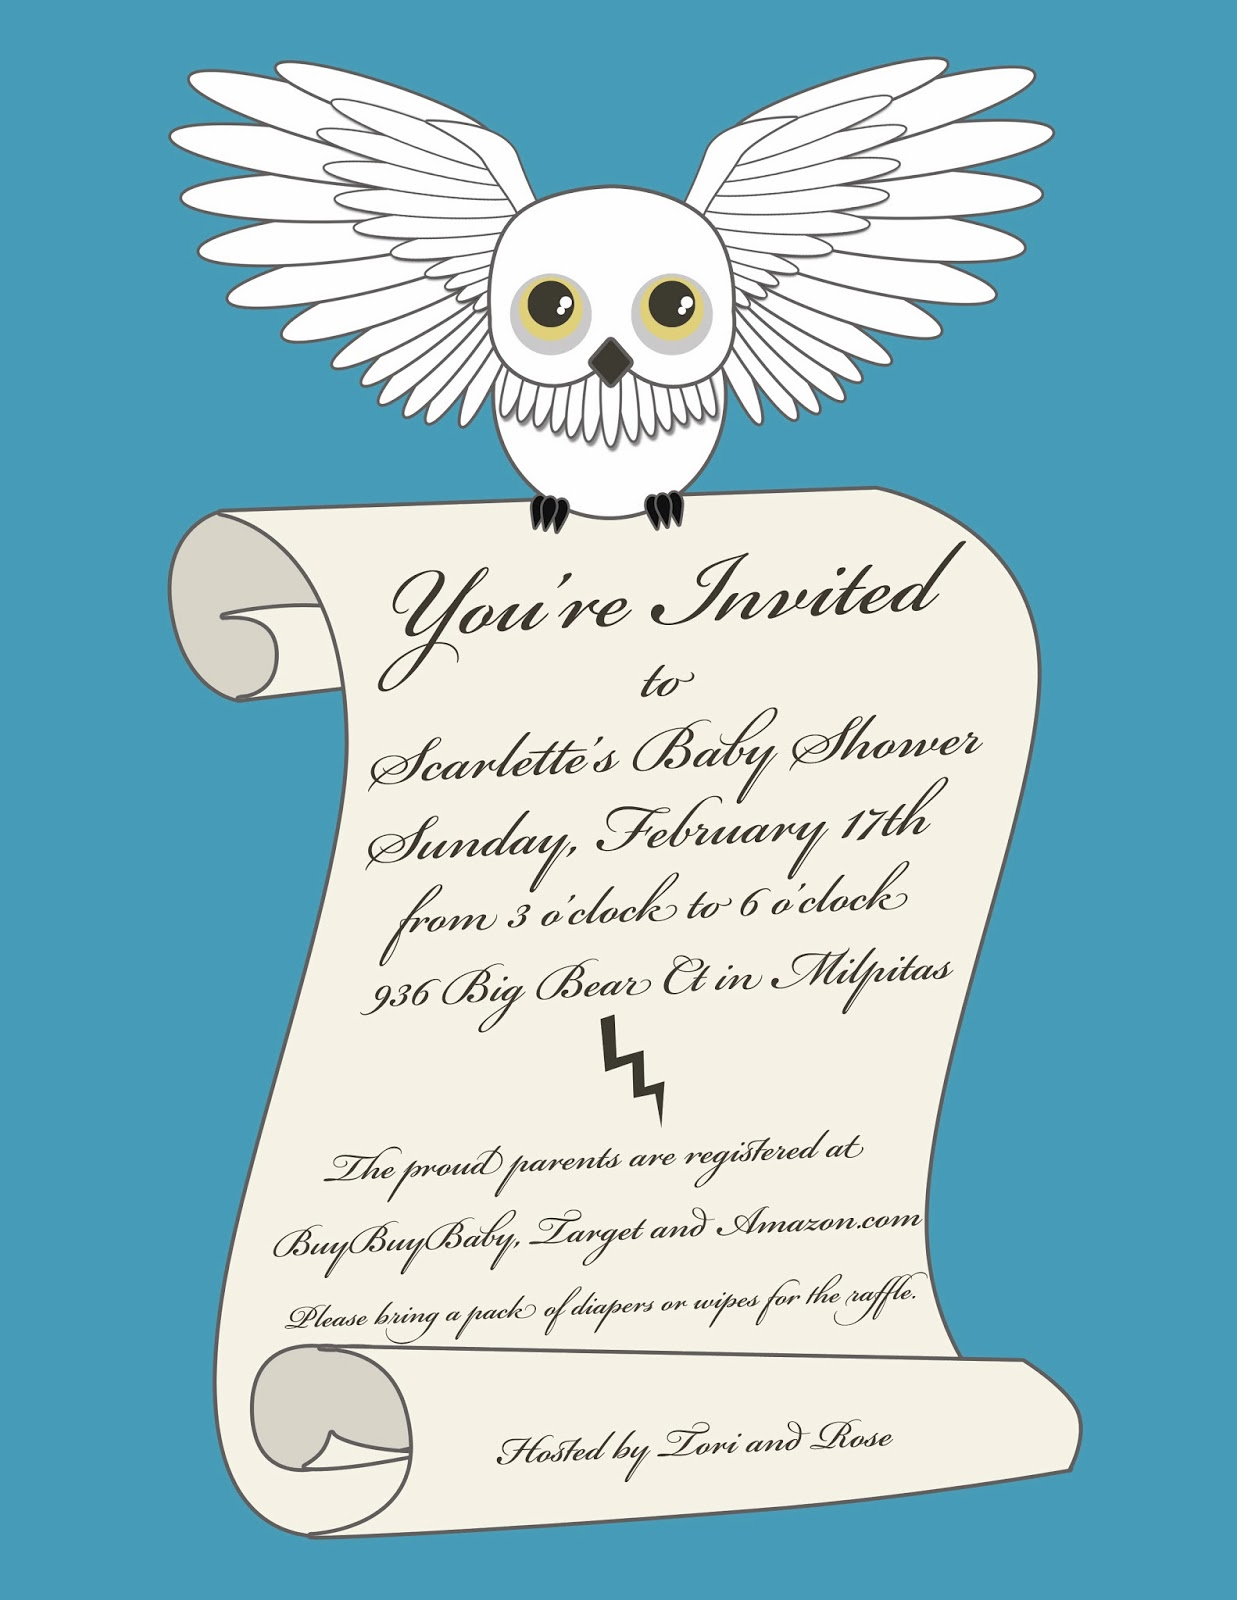 NotoriousStar Designs: Harry Potter Baby Shower Invitation